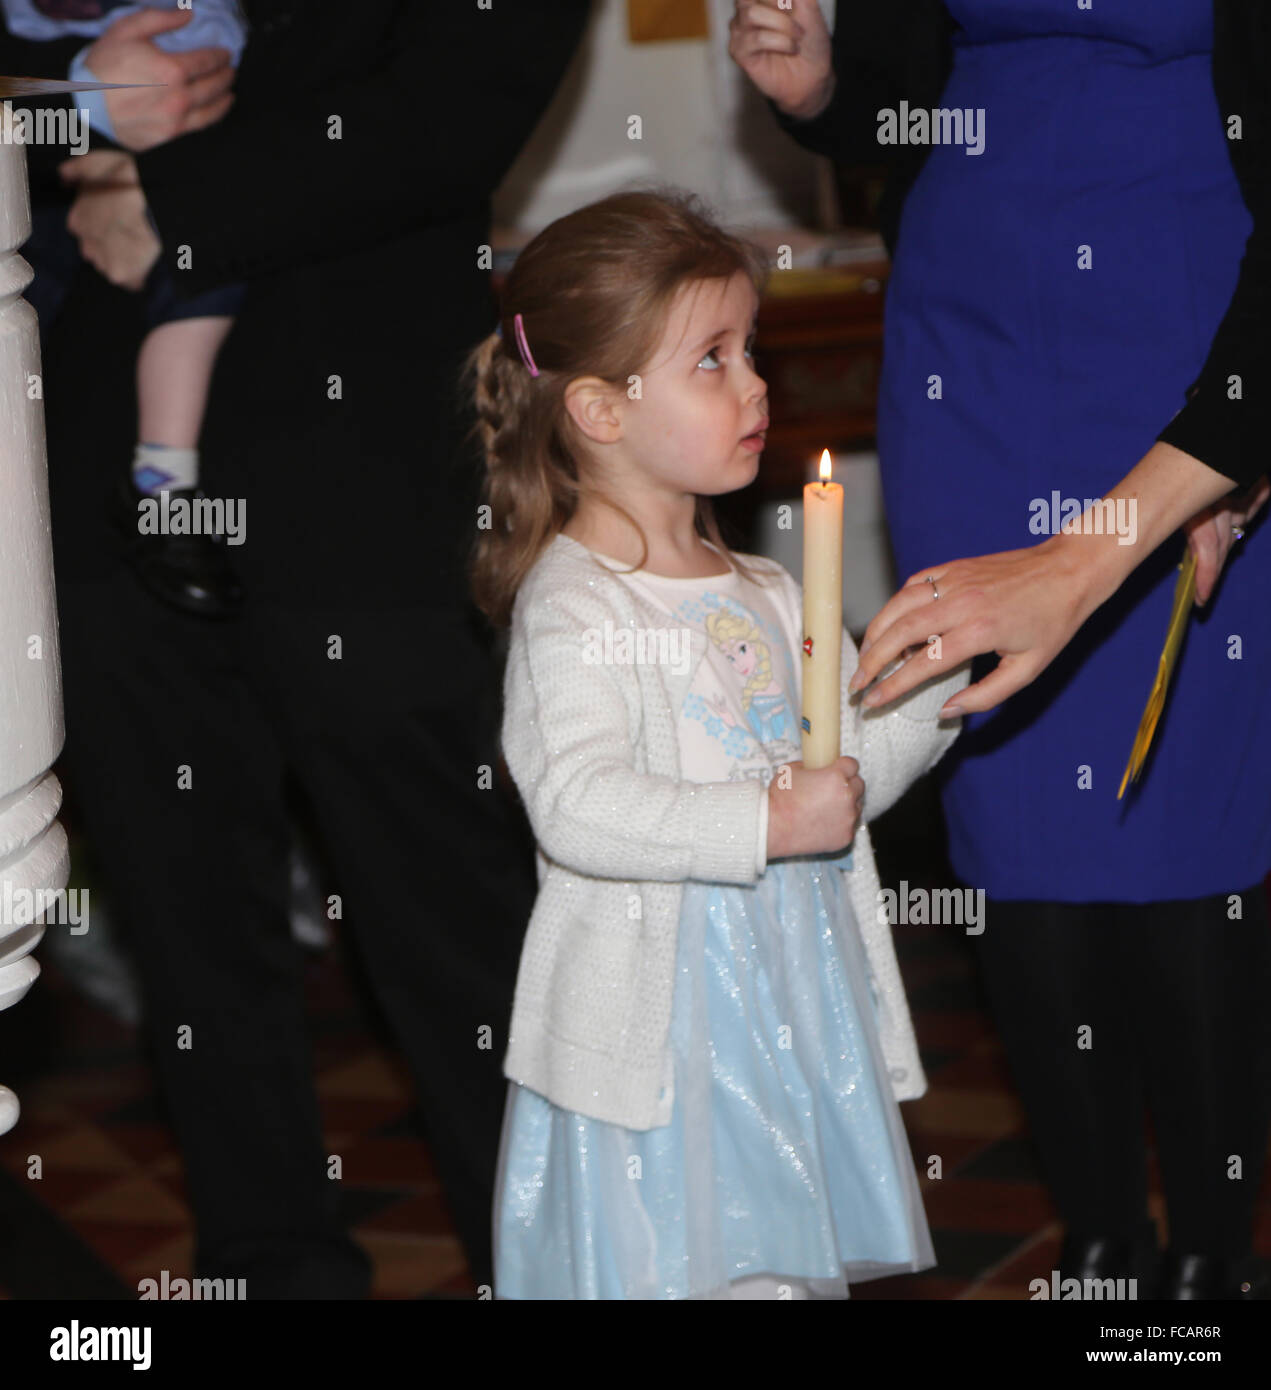 Christening At St Mary's Church Caterham On The Hill Surrey England Girl Holding Baptism Candle - Stock Image